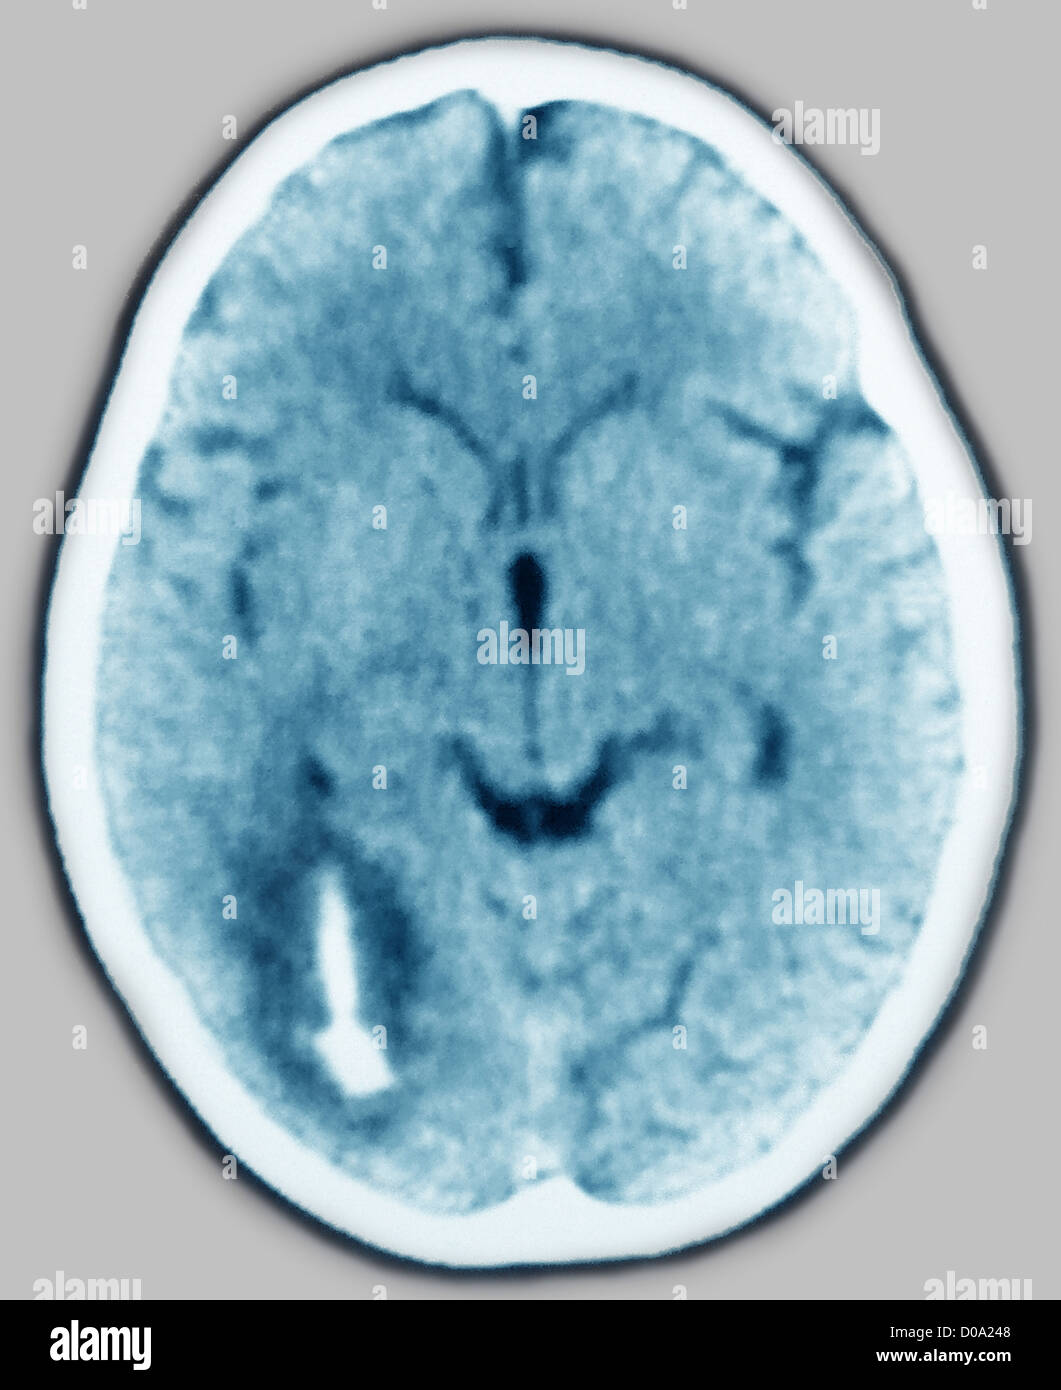 HEMORRHAGE, BRAIN SCAN - Stock Image